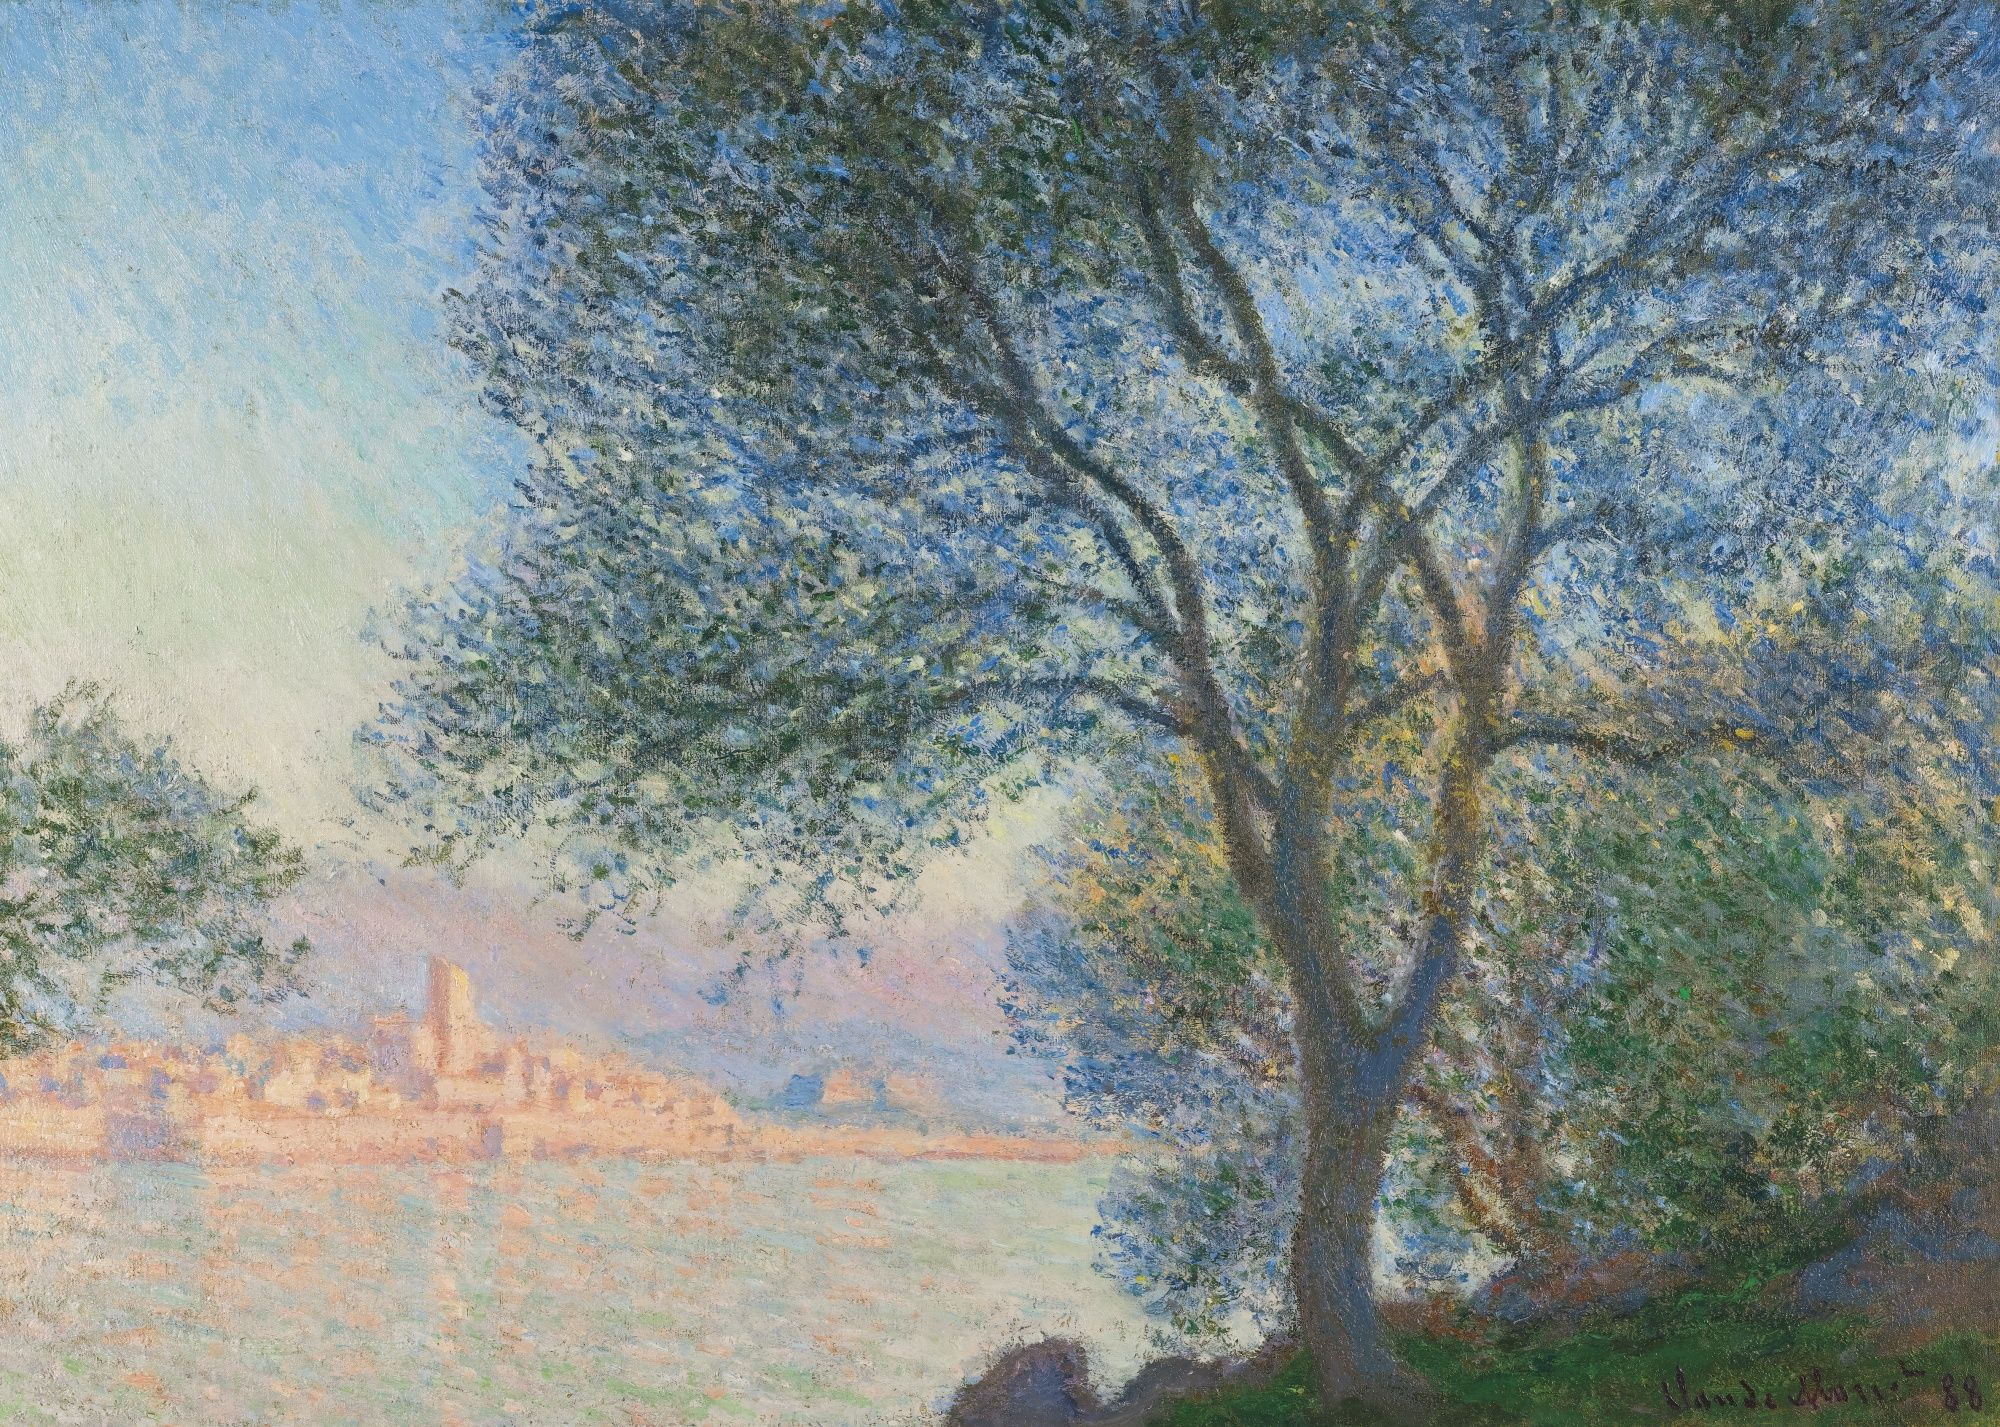 Claude Monet (1840 - 1926), Antibes vue de la Salis, signed Claude Monet and dated 88 (lower right), oil on canvas, 65.5 by 91cm. 25 3/4 by 35 7/8 in. Painted in 1888